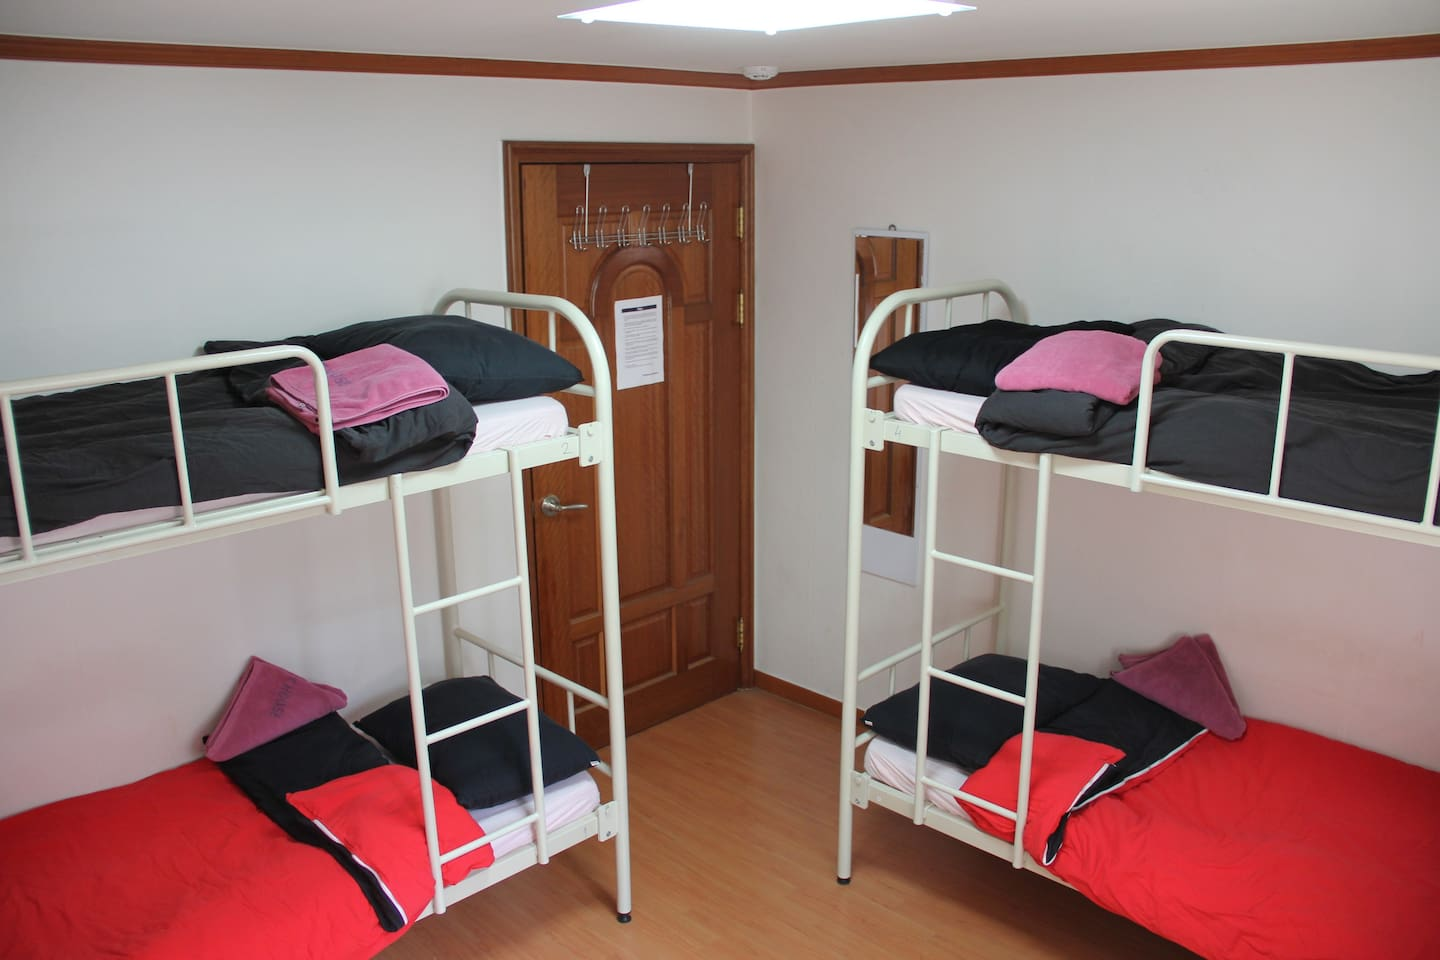 Room photo and bed